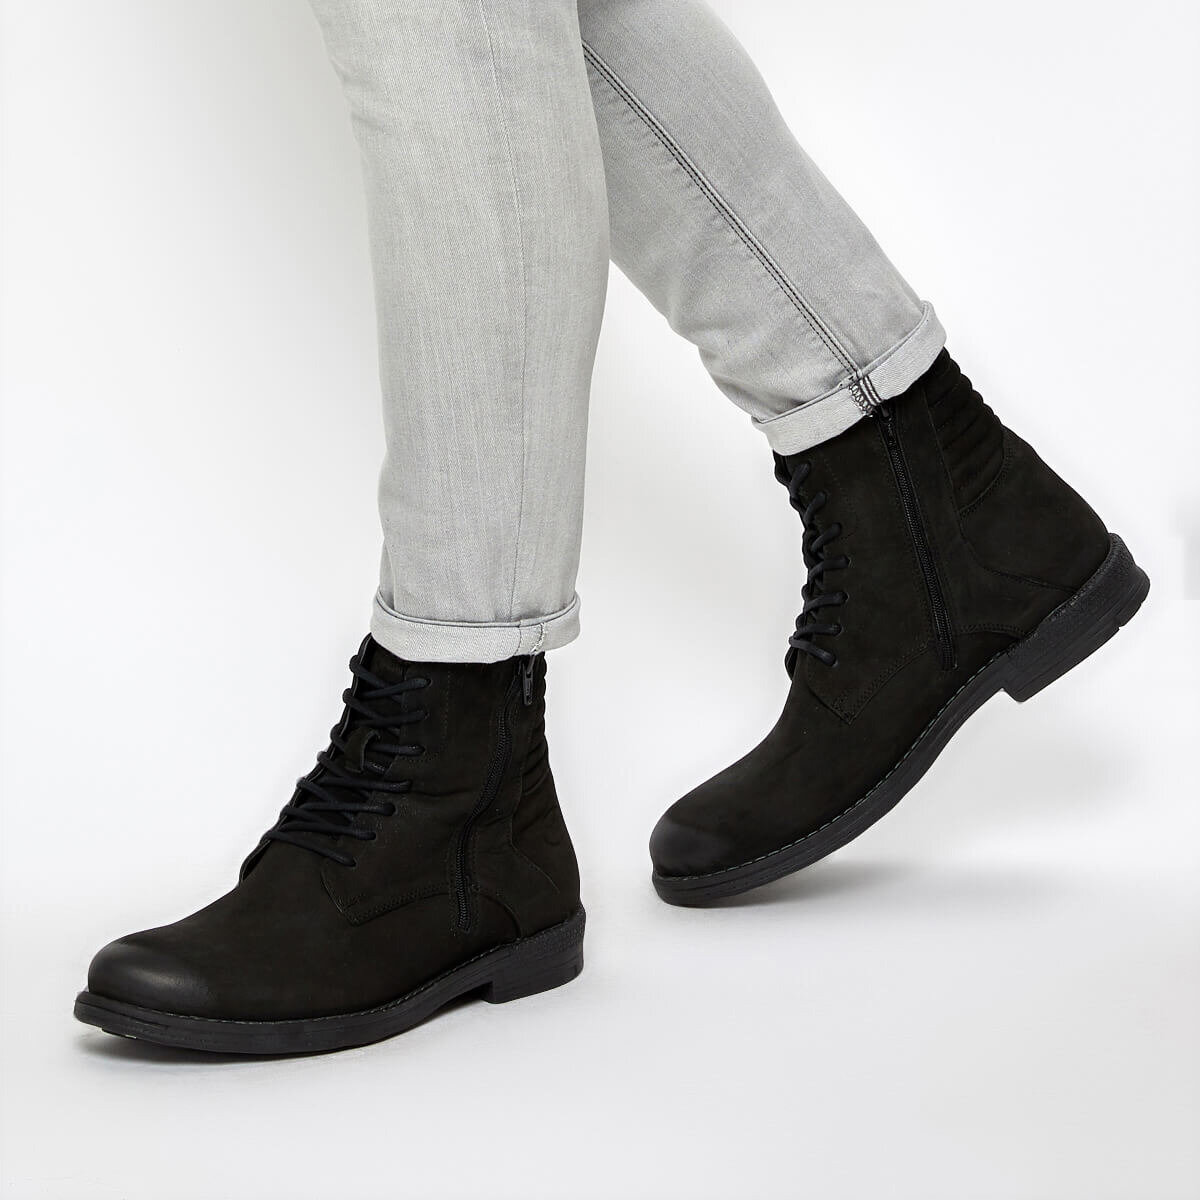 FLO 225270 9PR Black Men Boots By Dockers The Gerle